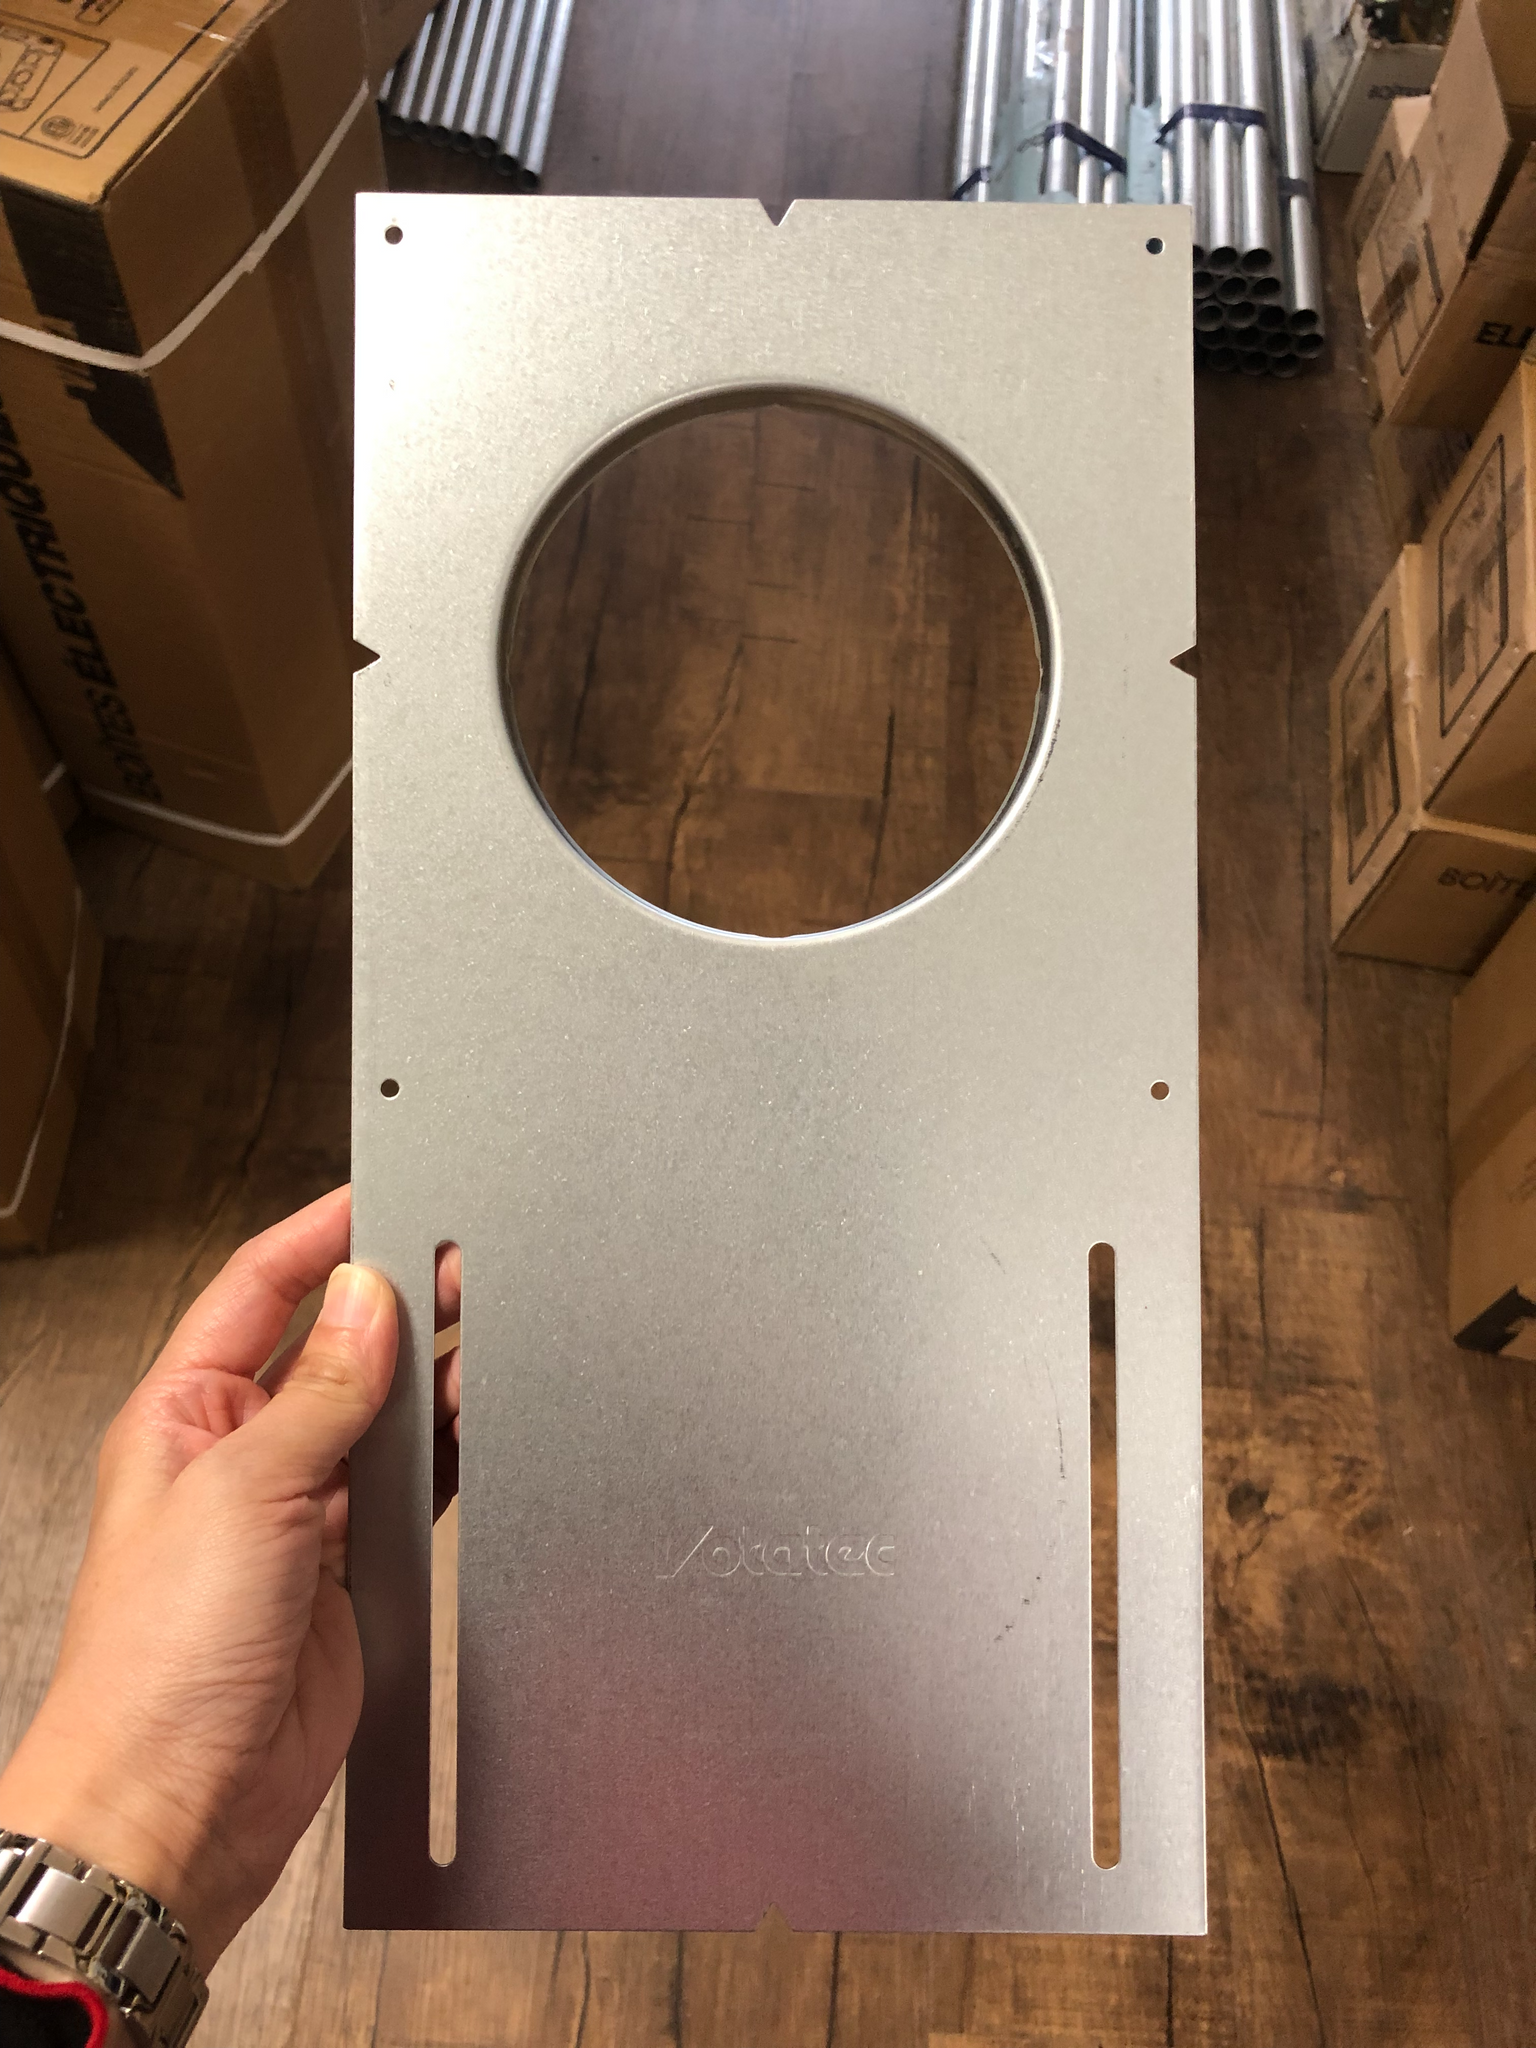 "Votatec 4"" Mounting Plate (With Lip) for 4"" retrofit housings and 4"" Slim Panels Without scales"